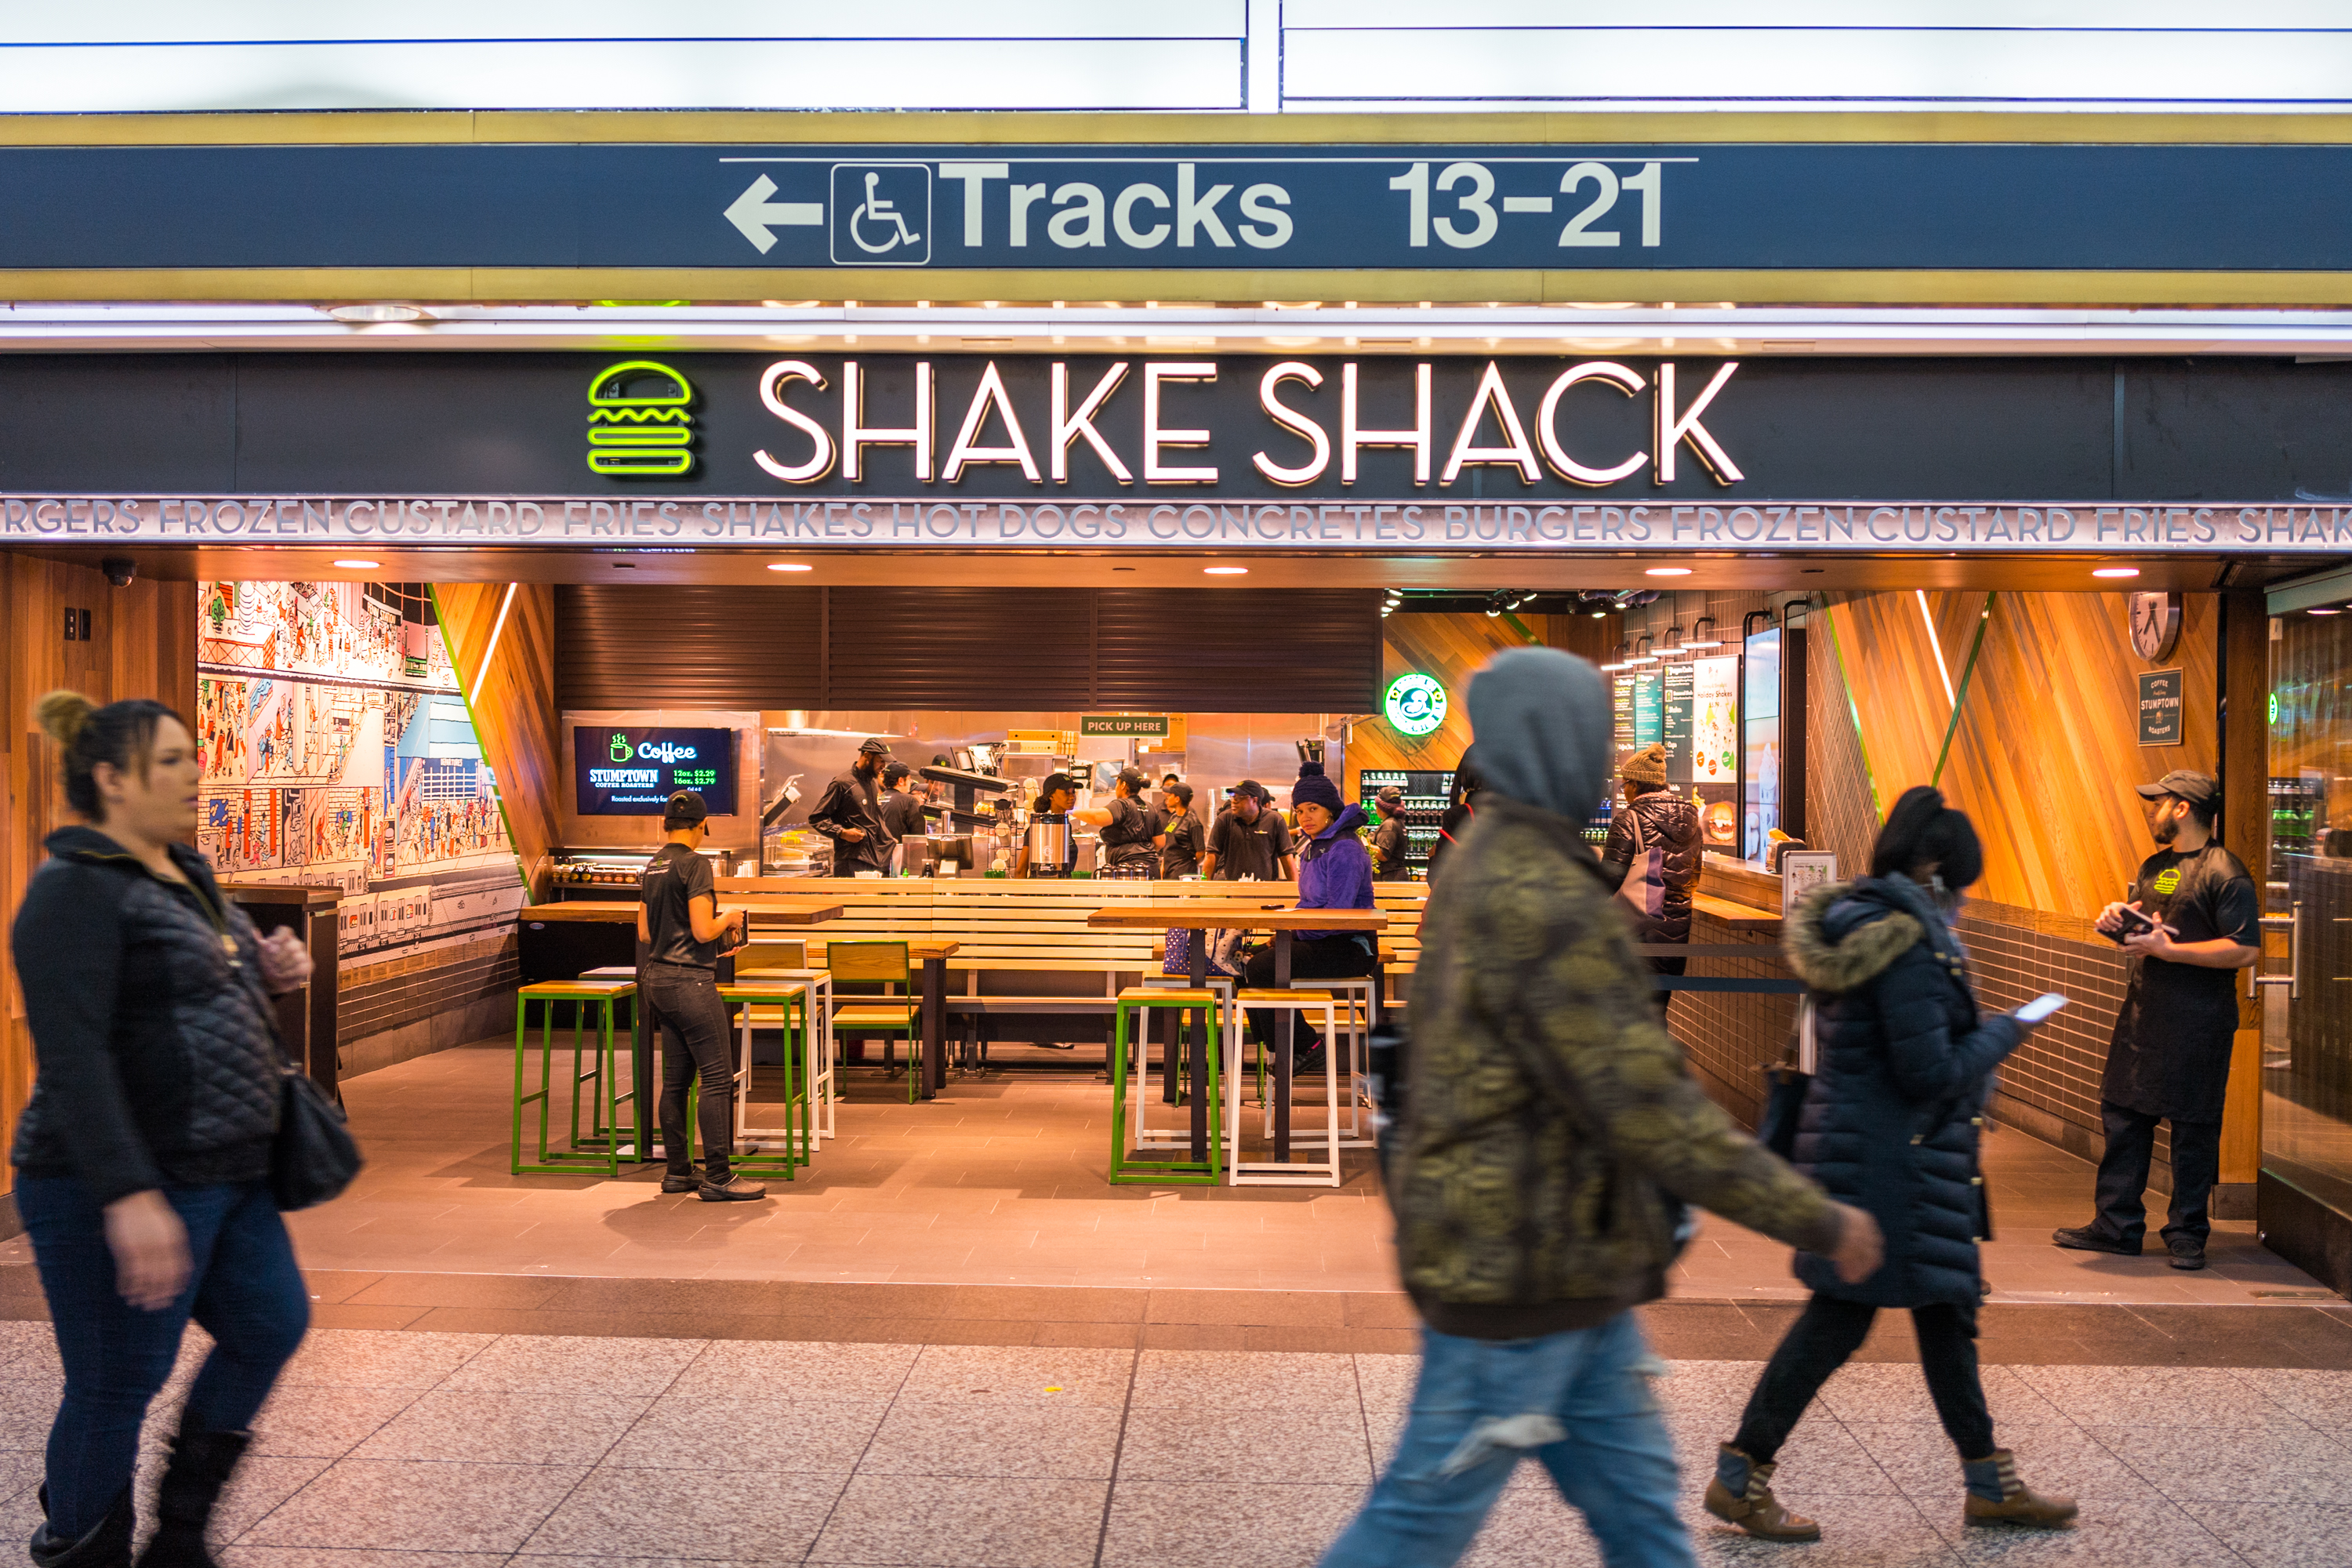 A view of Shake Shack in Penn Station as commuters rush by